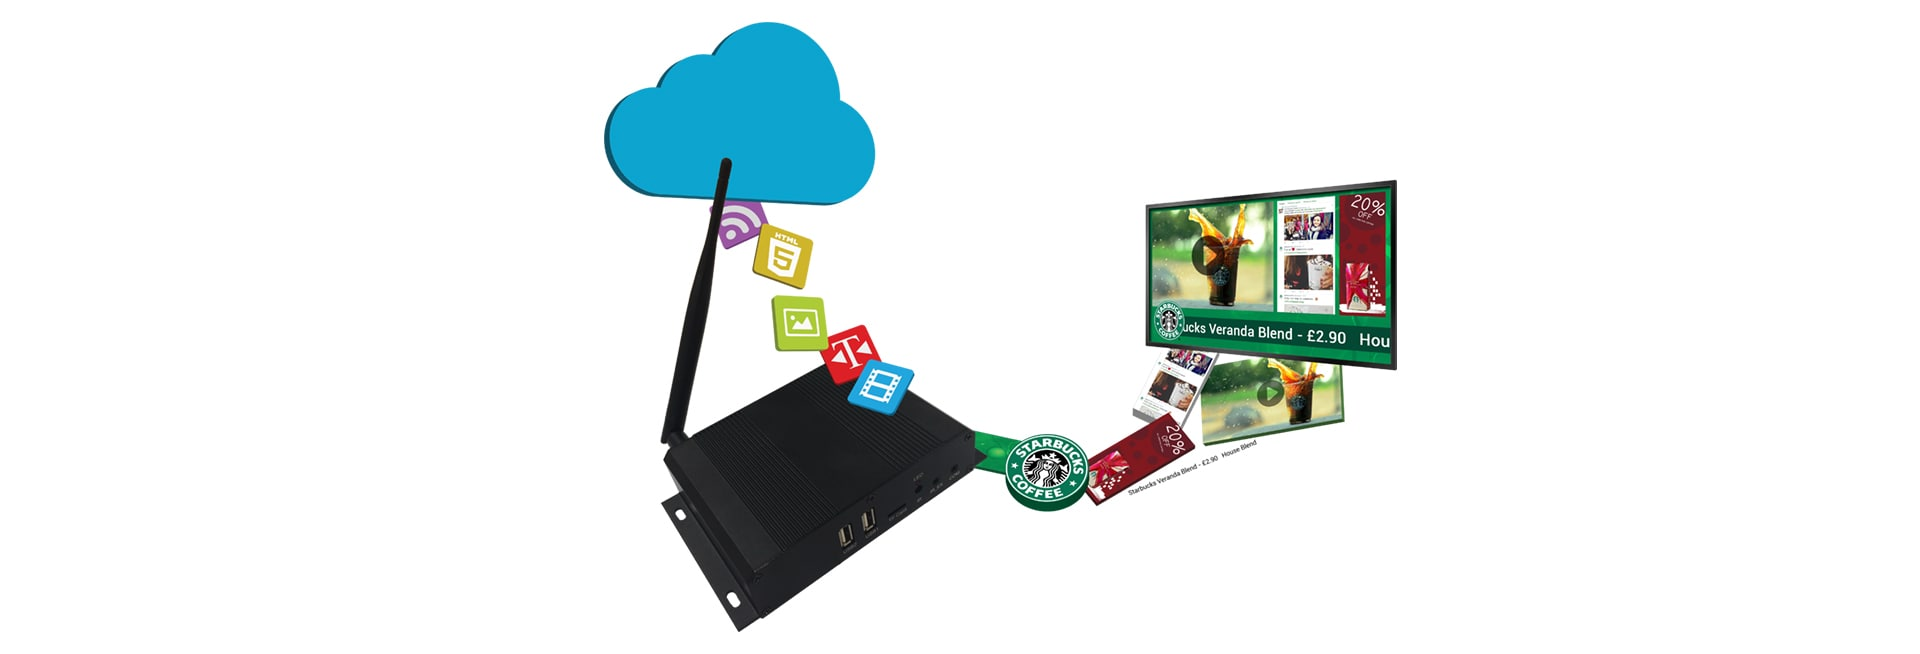 Network Digital Signage Multimedia Players with Software